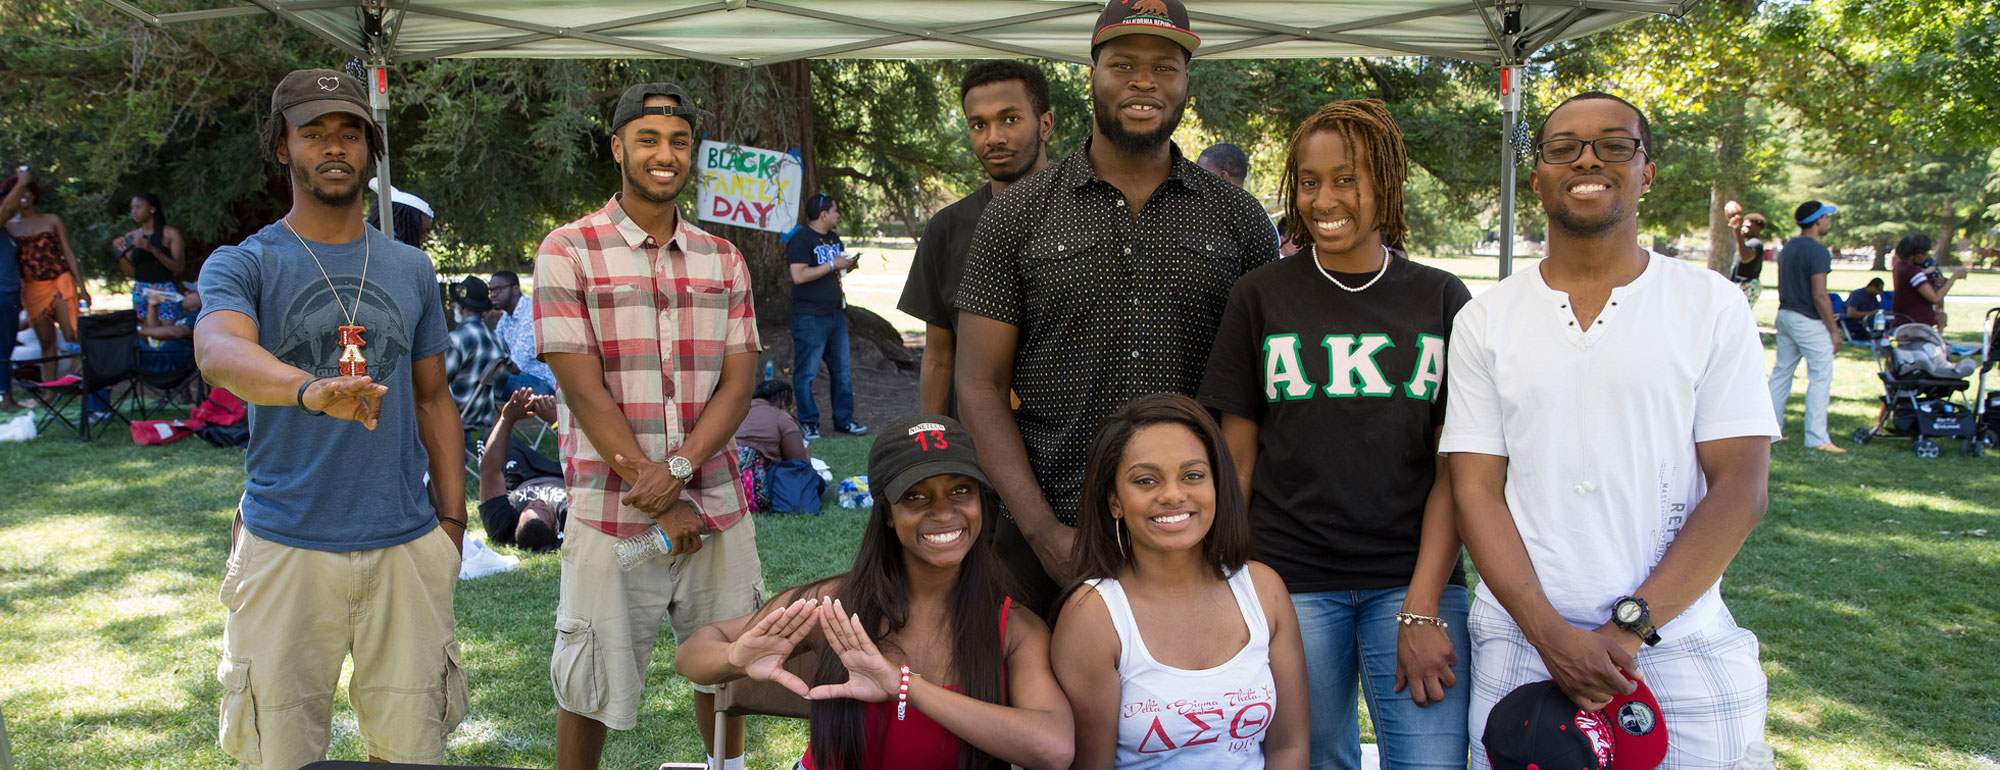 Student organizations at Black Family Day